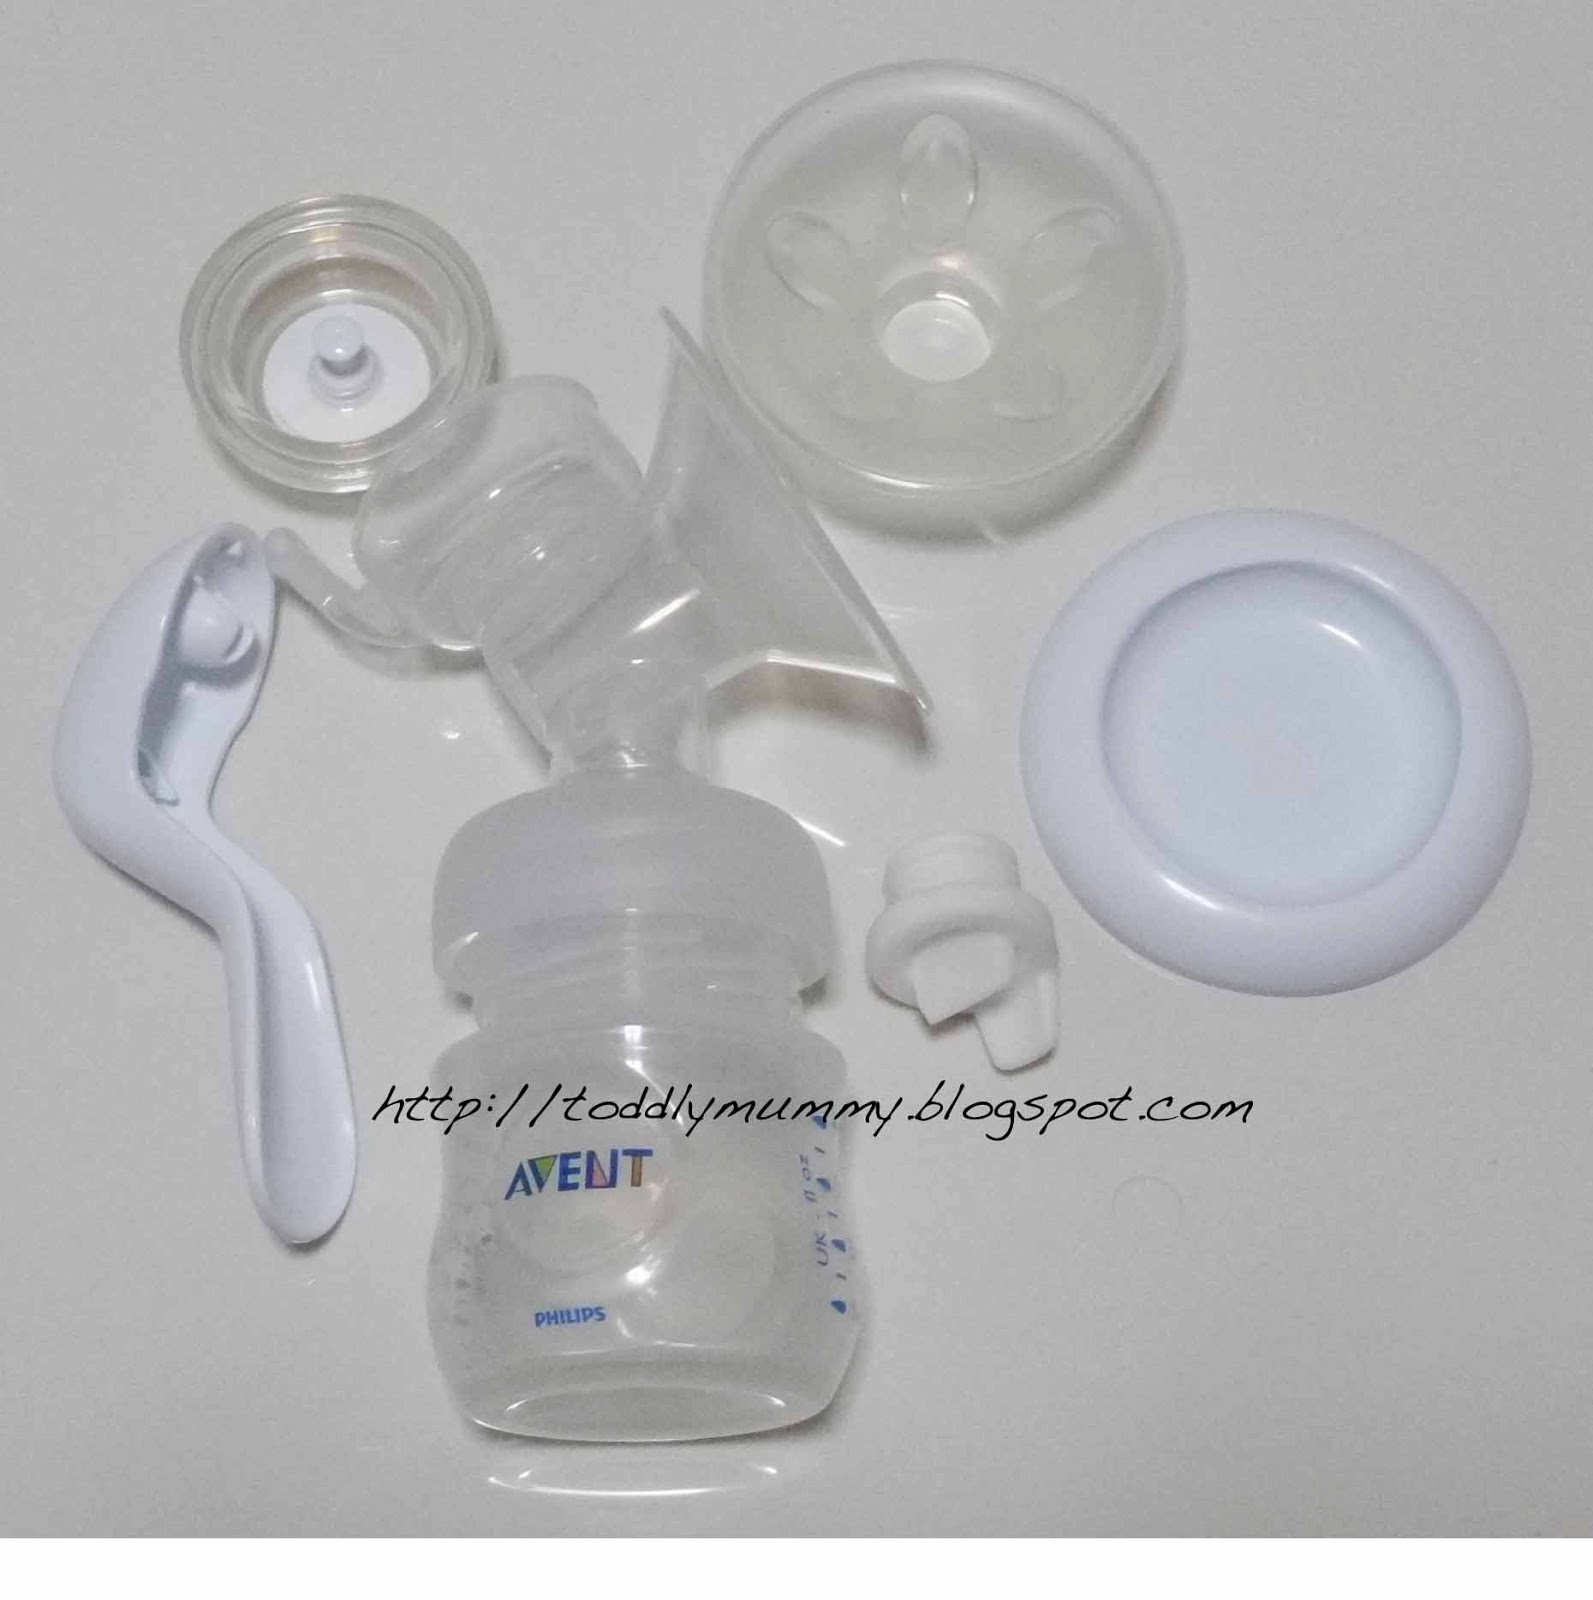 singapore family blog toddly mummy review philips avent breast rh toddlymummy blogspot com avent hand breast pump parts avent manual breast pump parts